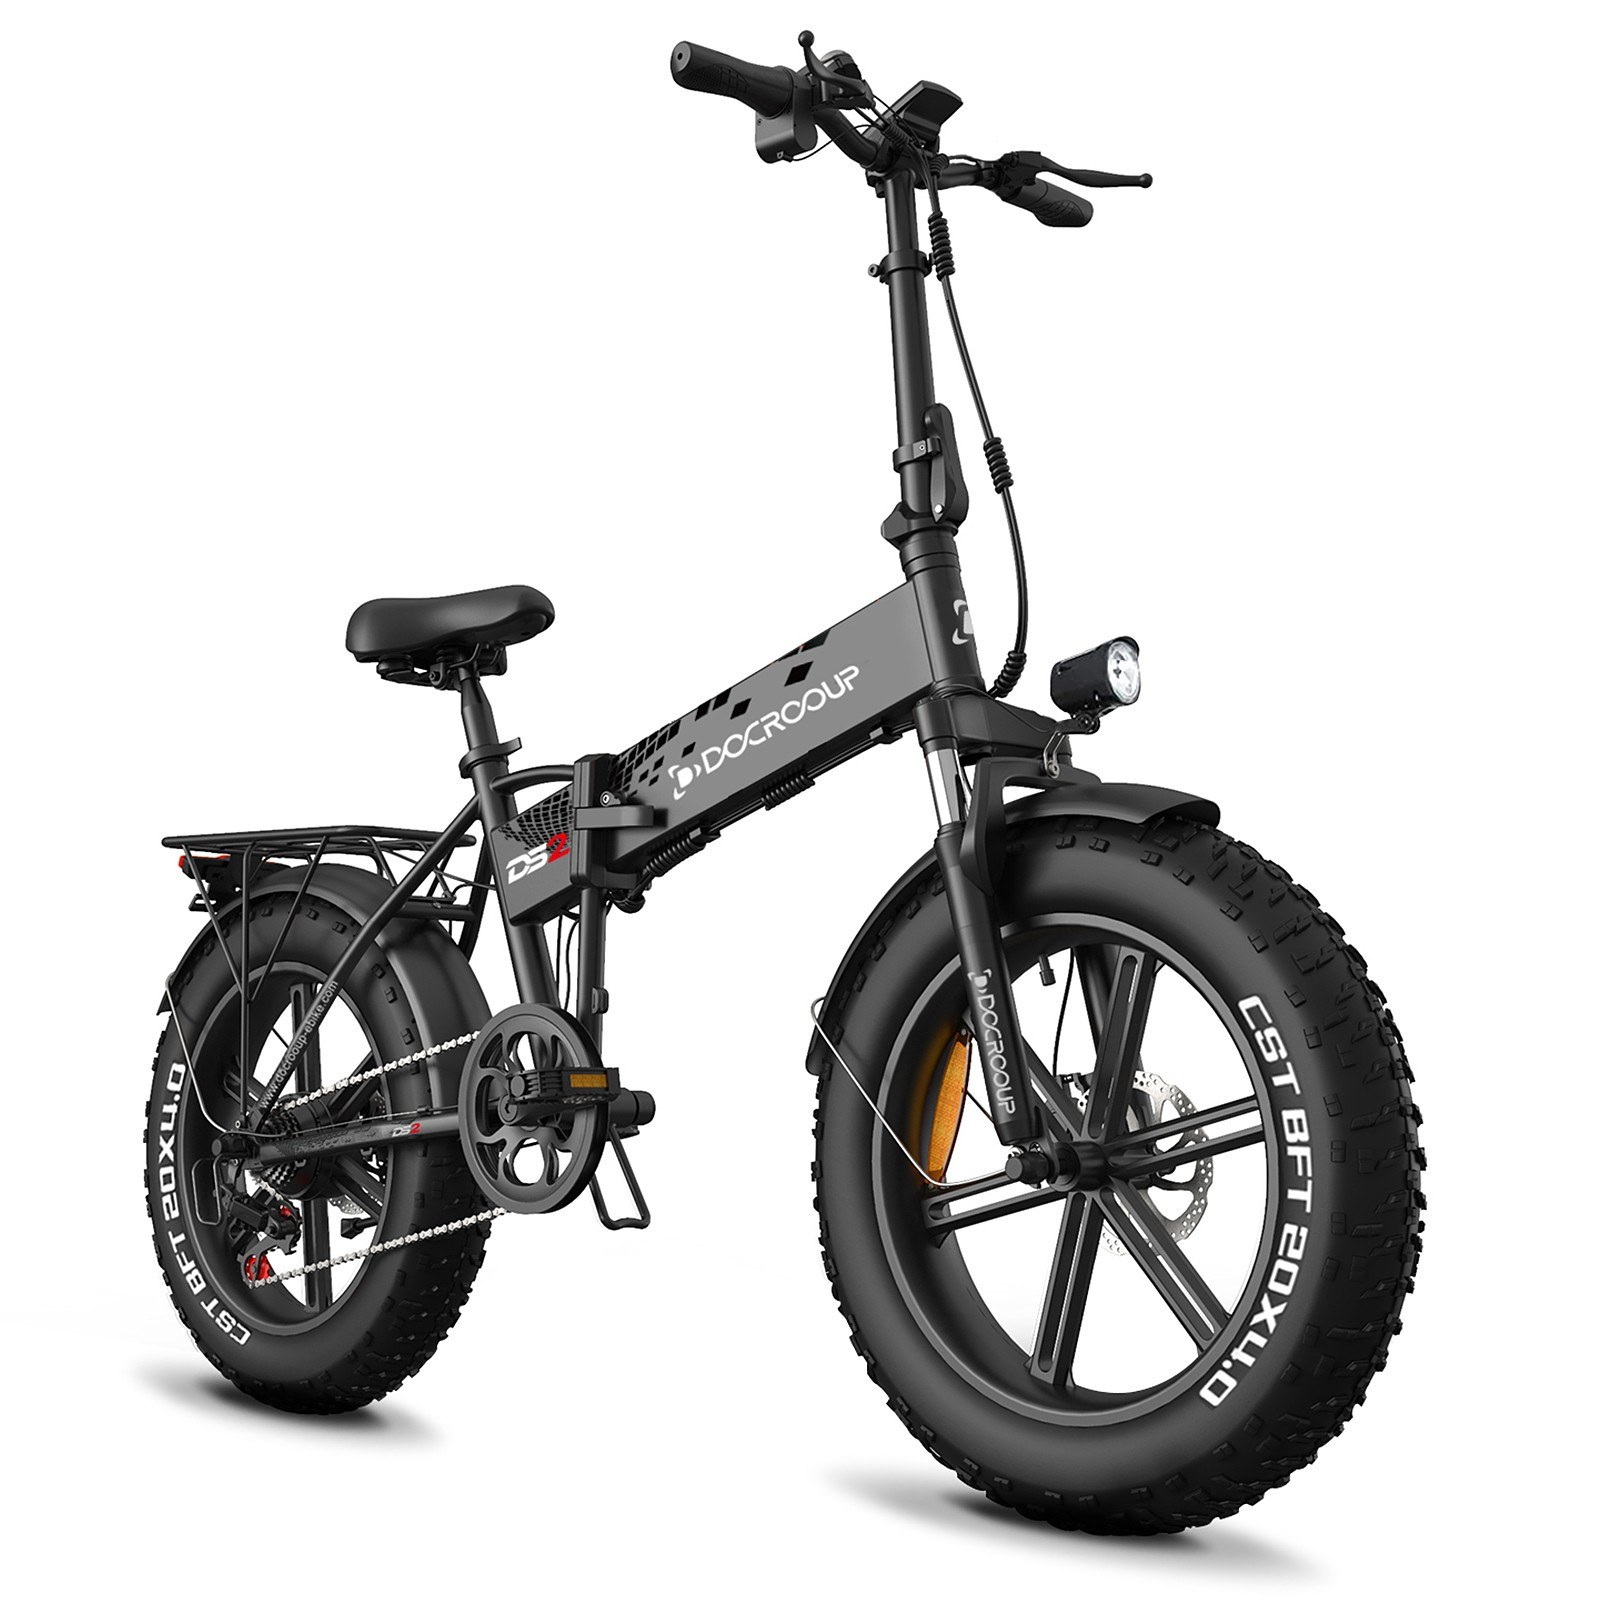 tomtop.com - [US Warehouse] DOCROOUP 20Inch Folding Electric Bike with Turn Signals Brake Light, $1199